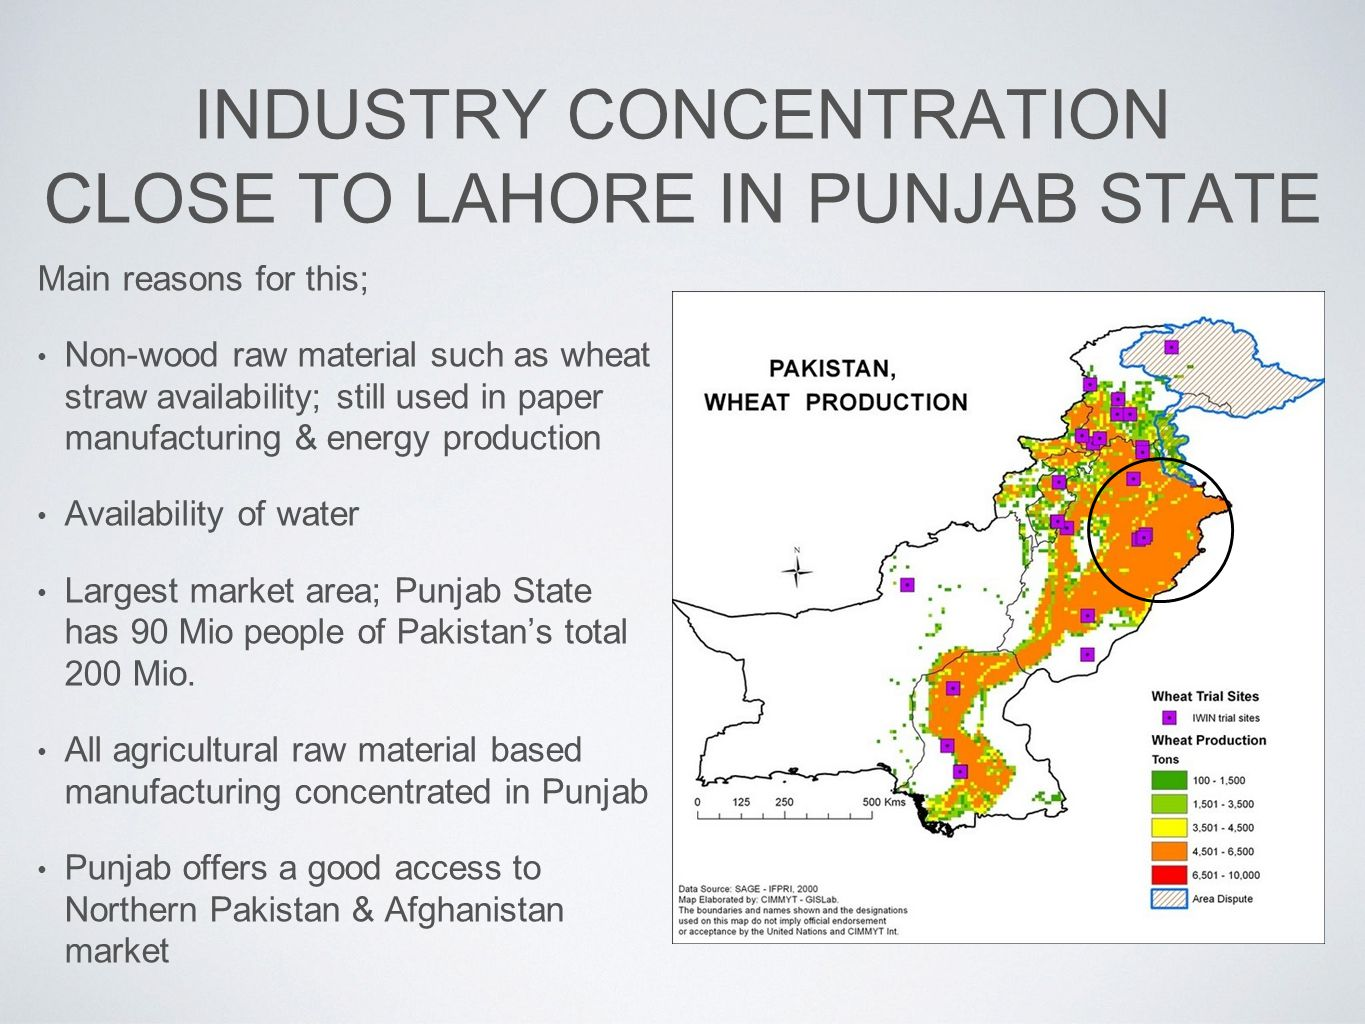 INDUSTRY CONCENTRATION CLOSE TO LAHORE IN PUNJAB STATE